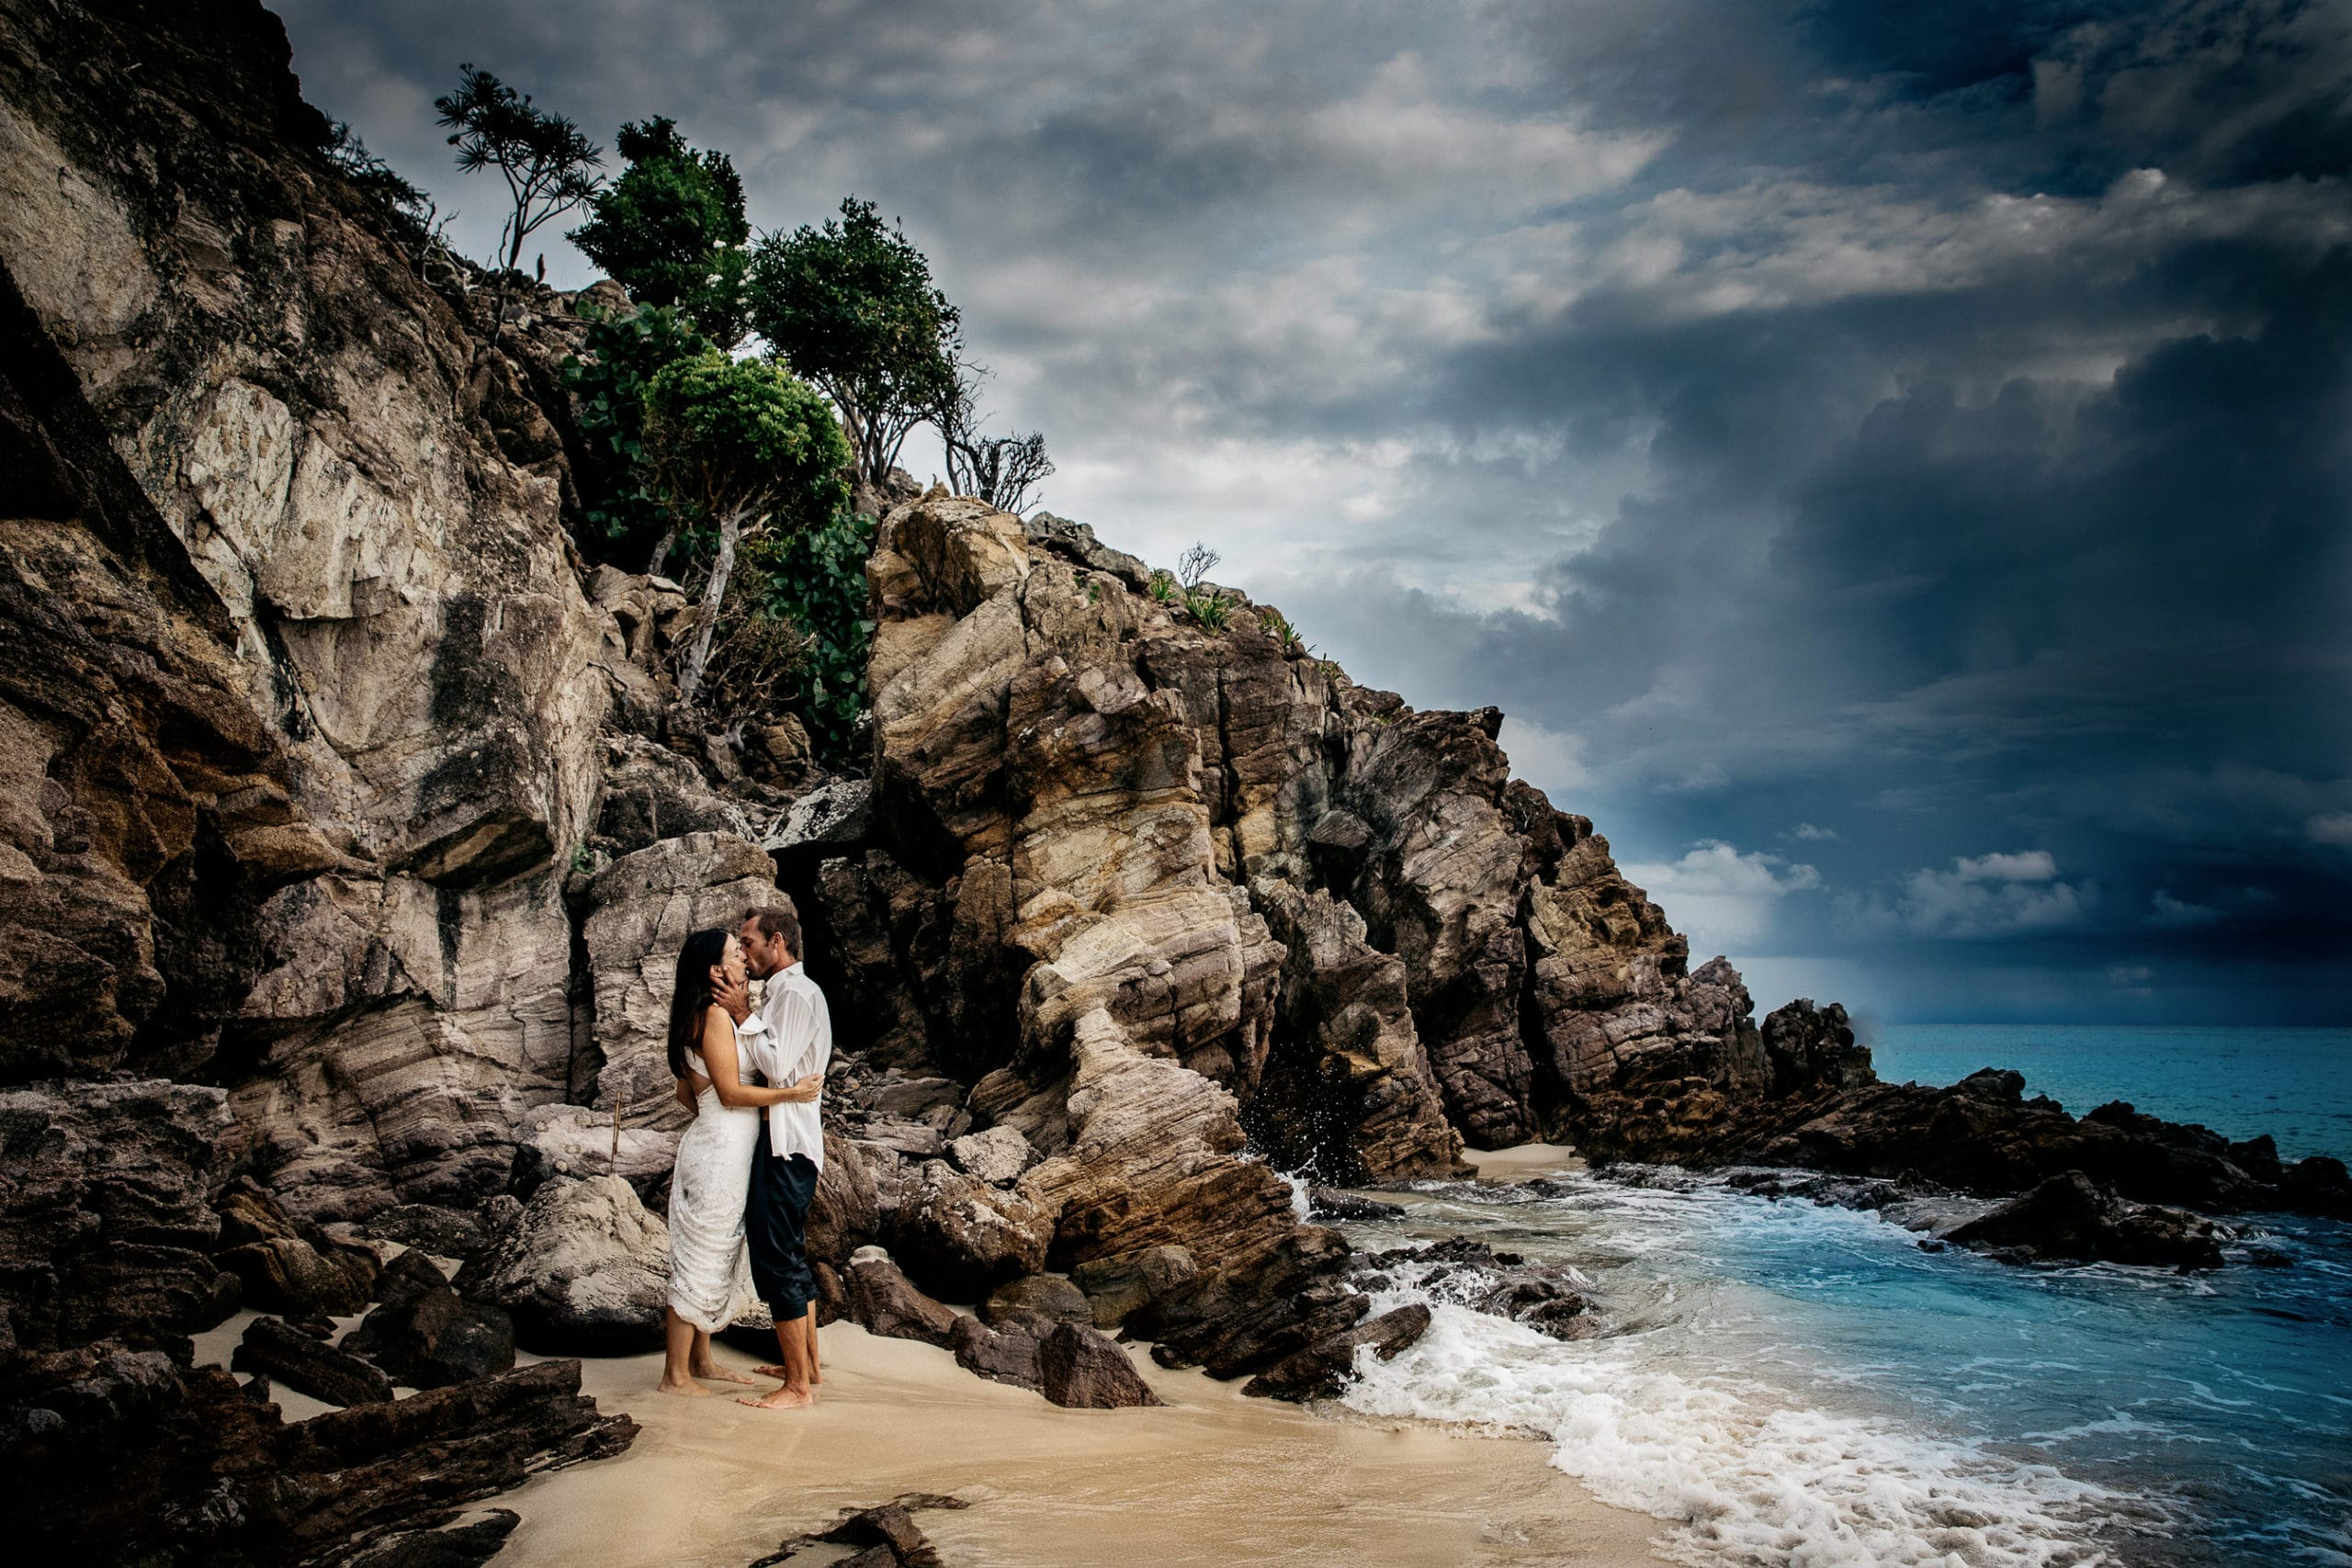 Destination wedding St Barthélemy photo de Castille ALMA photographe de mariage